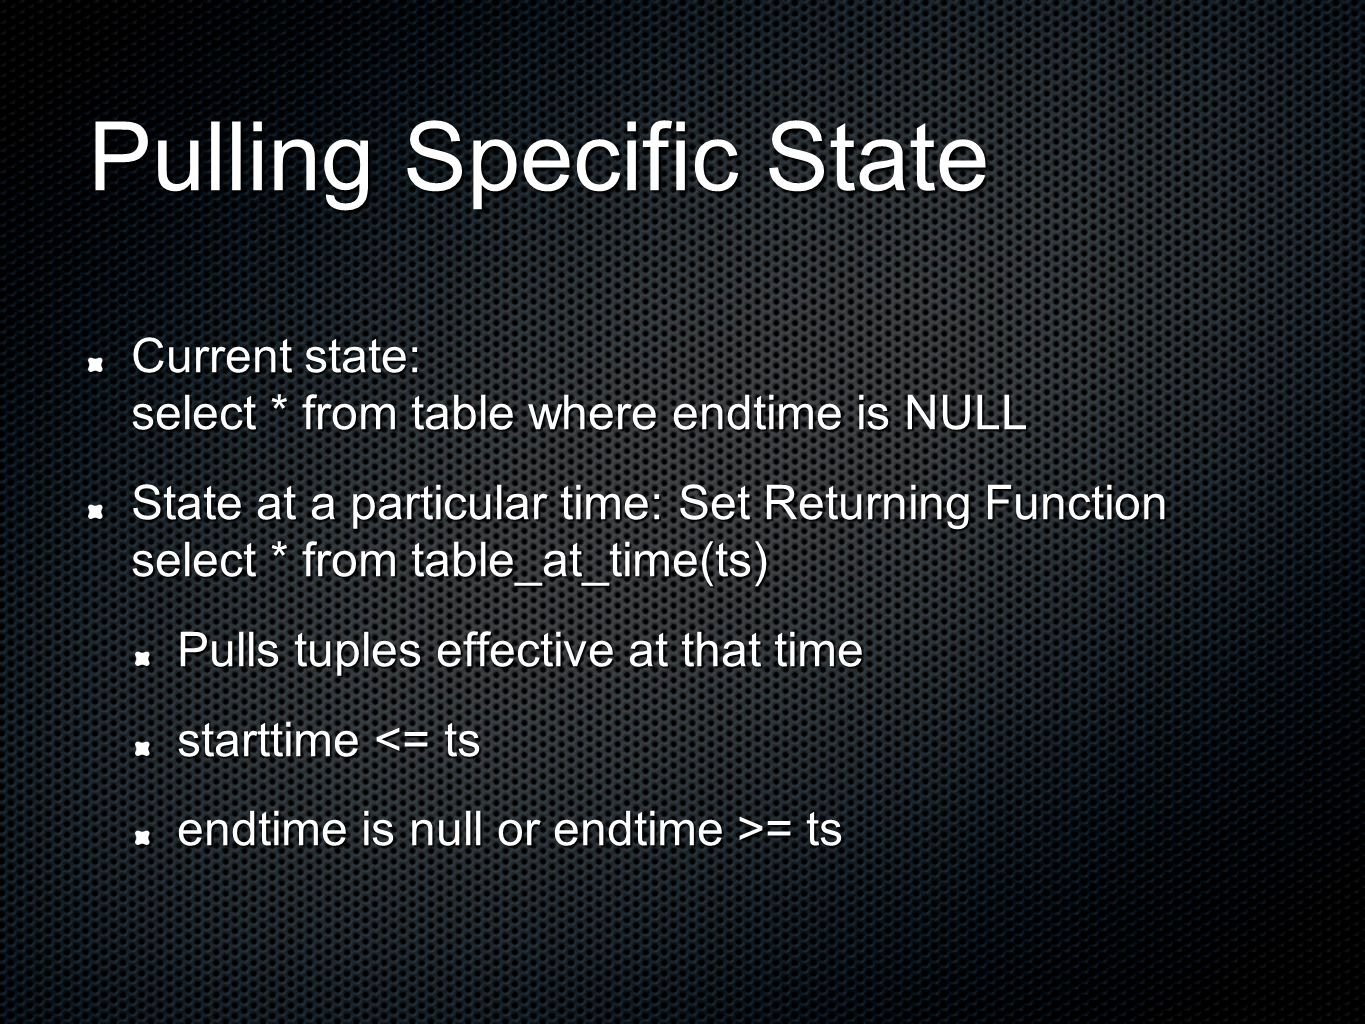 Pulling Specific State Current state: select * from table where endtime is NULL State at a particular time: Set Returning Function select * from table_at_time(ts) Pulls tuples effective at that time starttime <= ts endtime is null or endtime >= ts